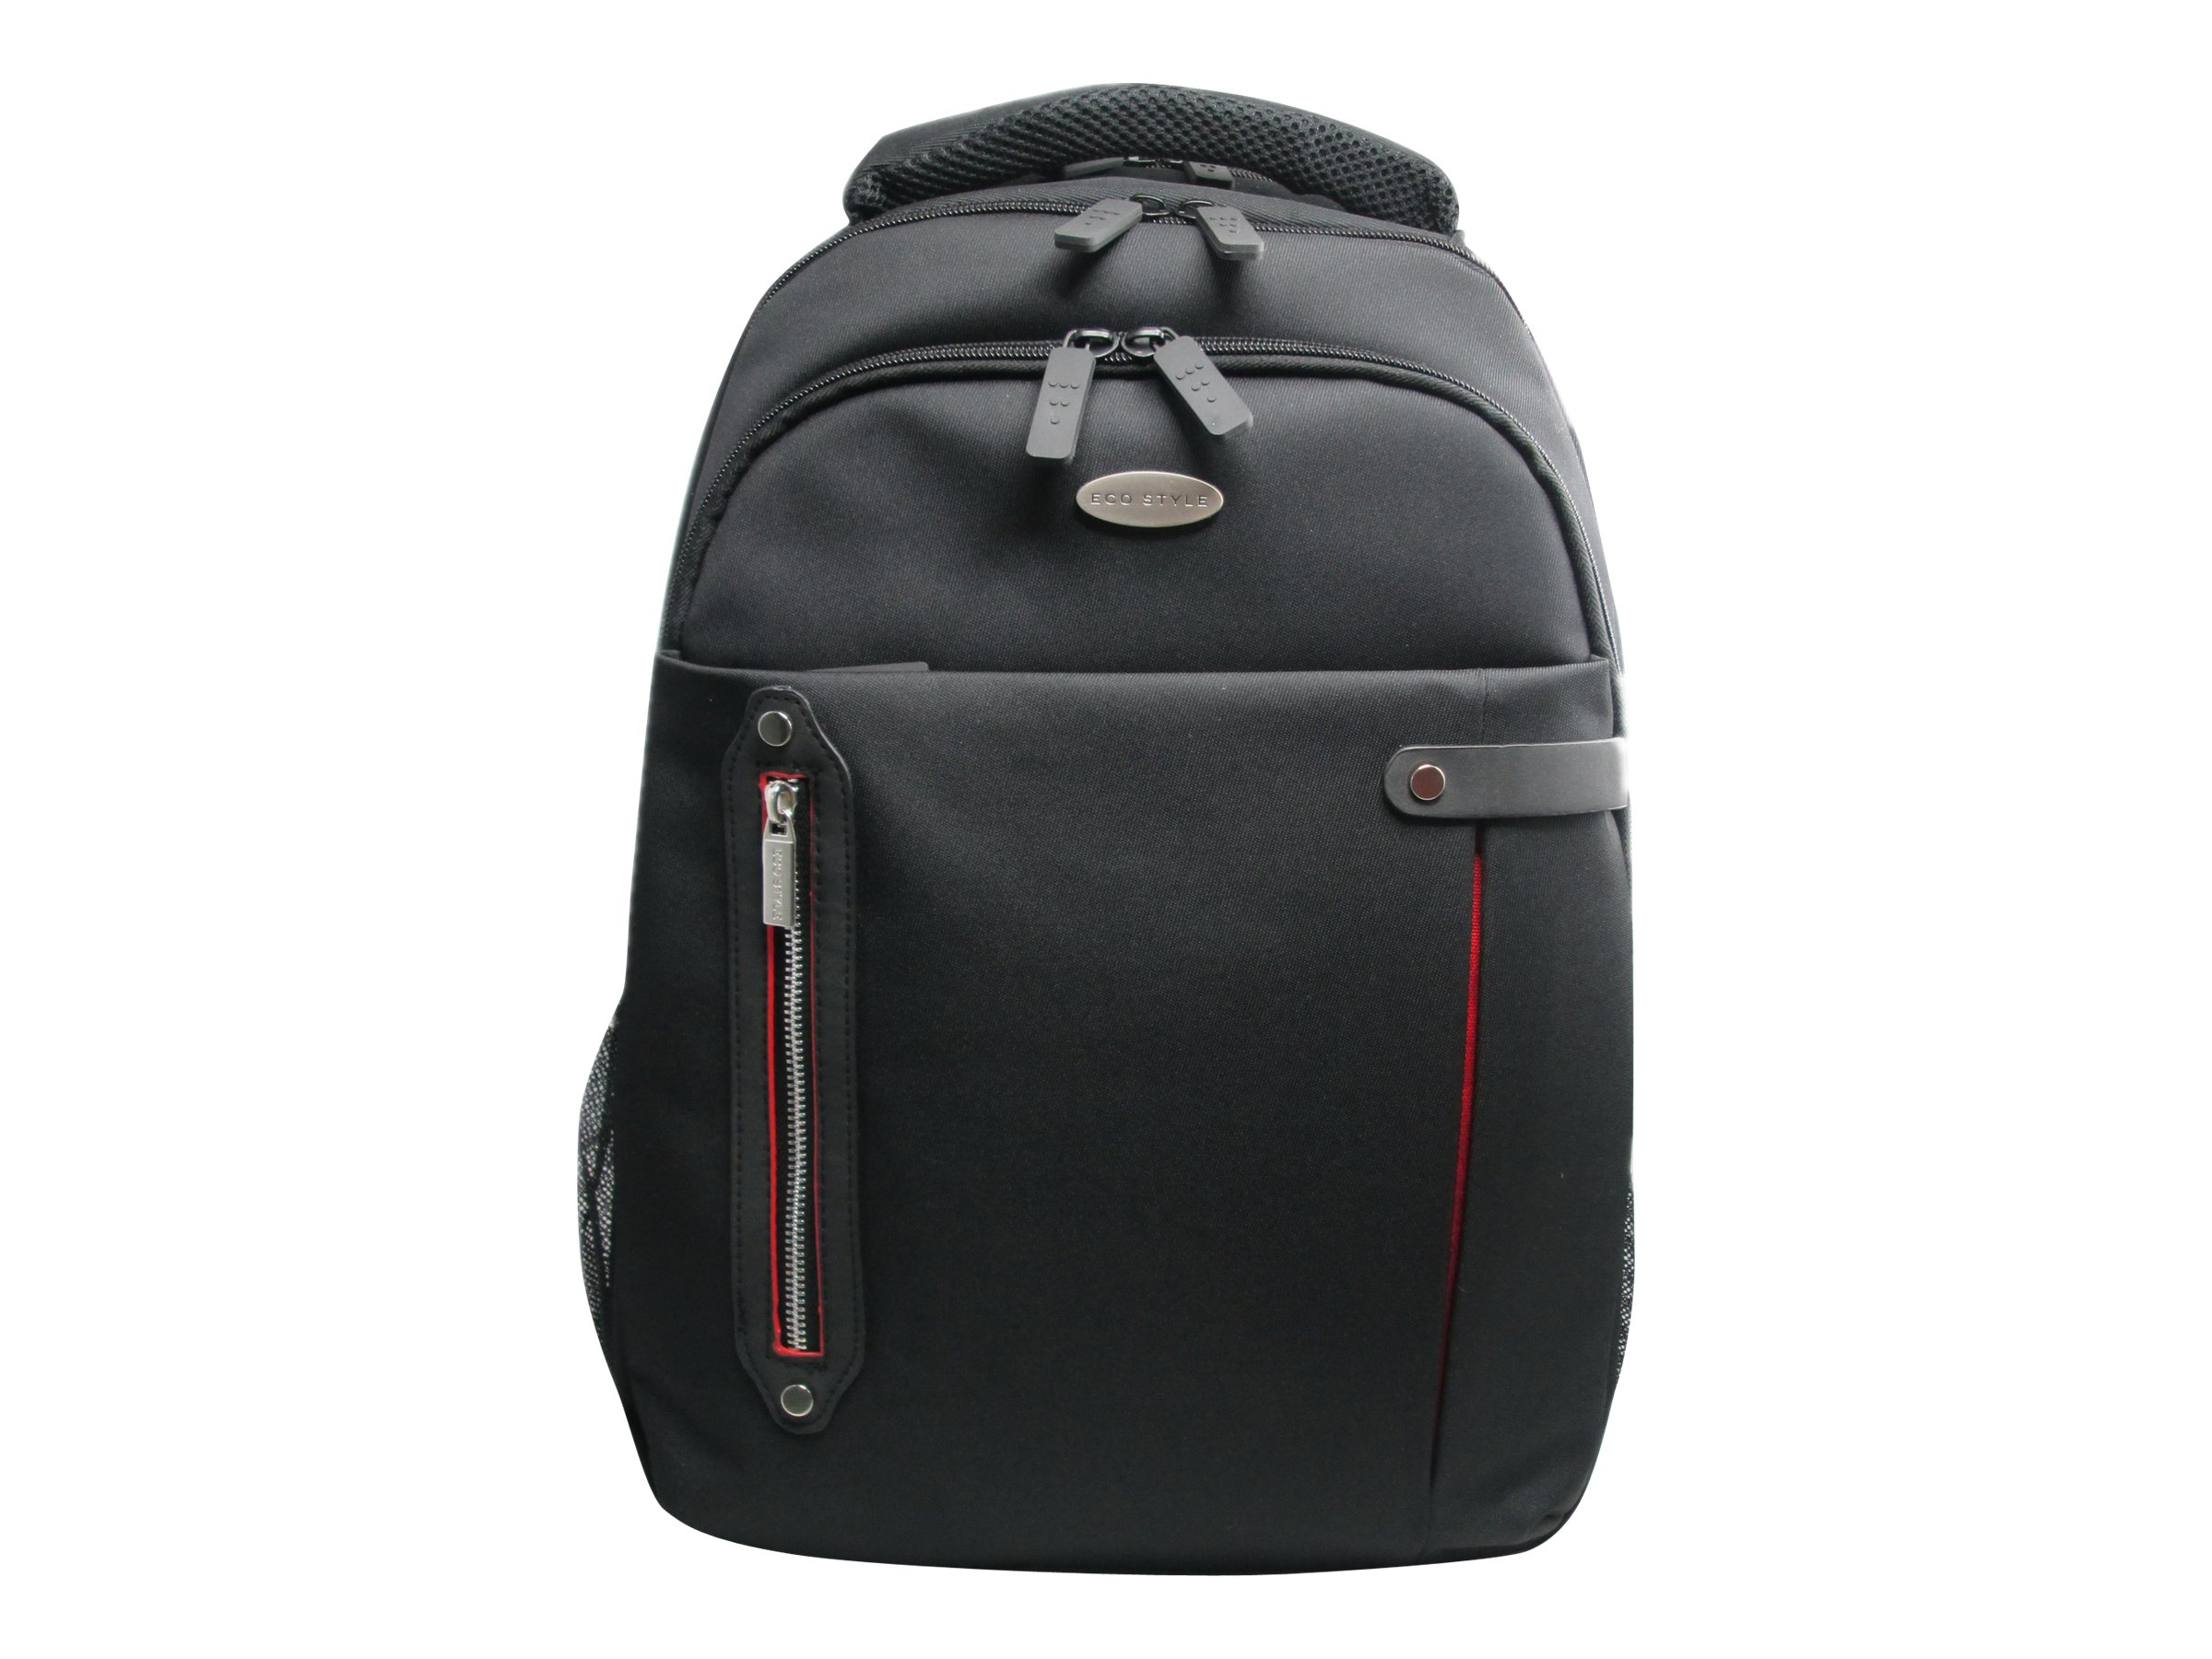 Eco Style Tech Pro Backpack Checkpoint Friendly